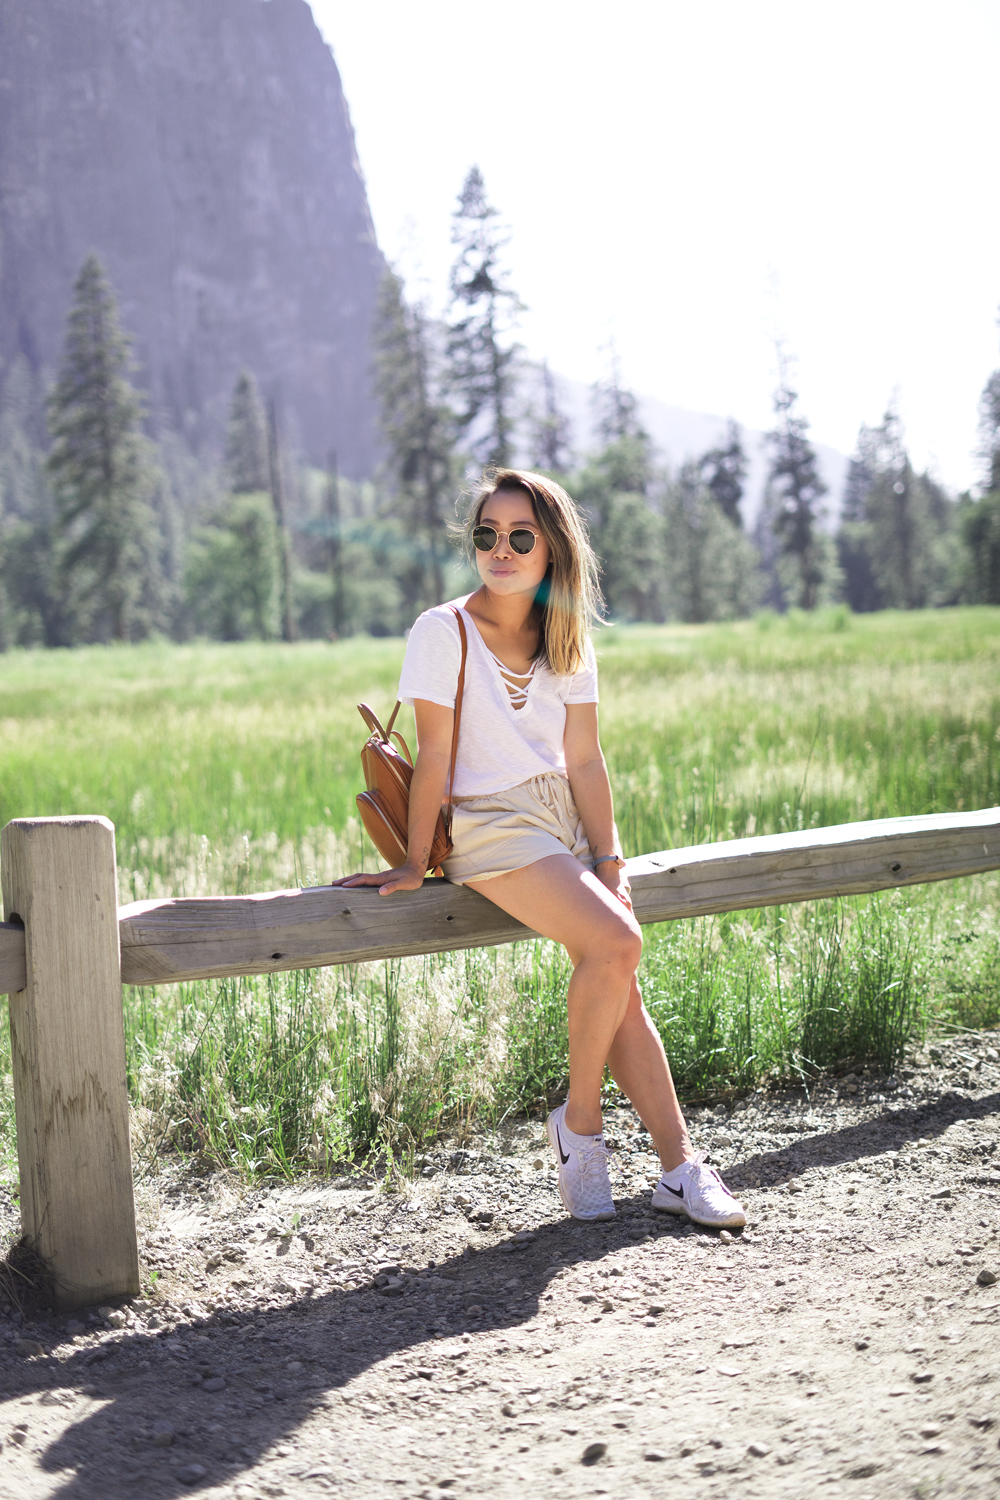 08yosemite-summer-travel-style-fashion